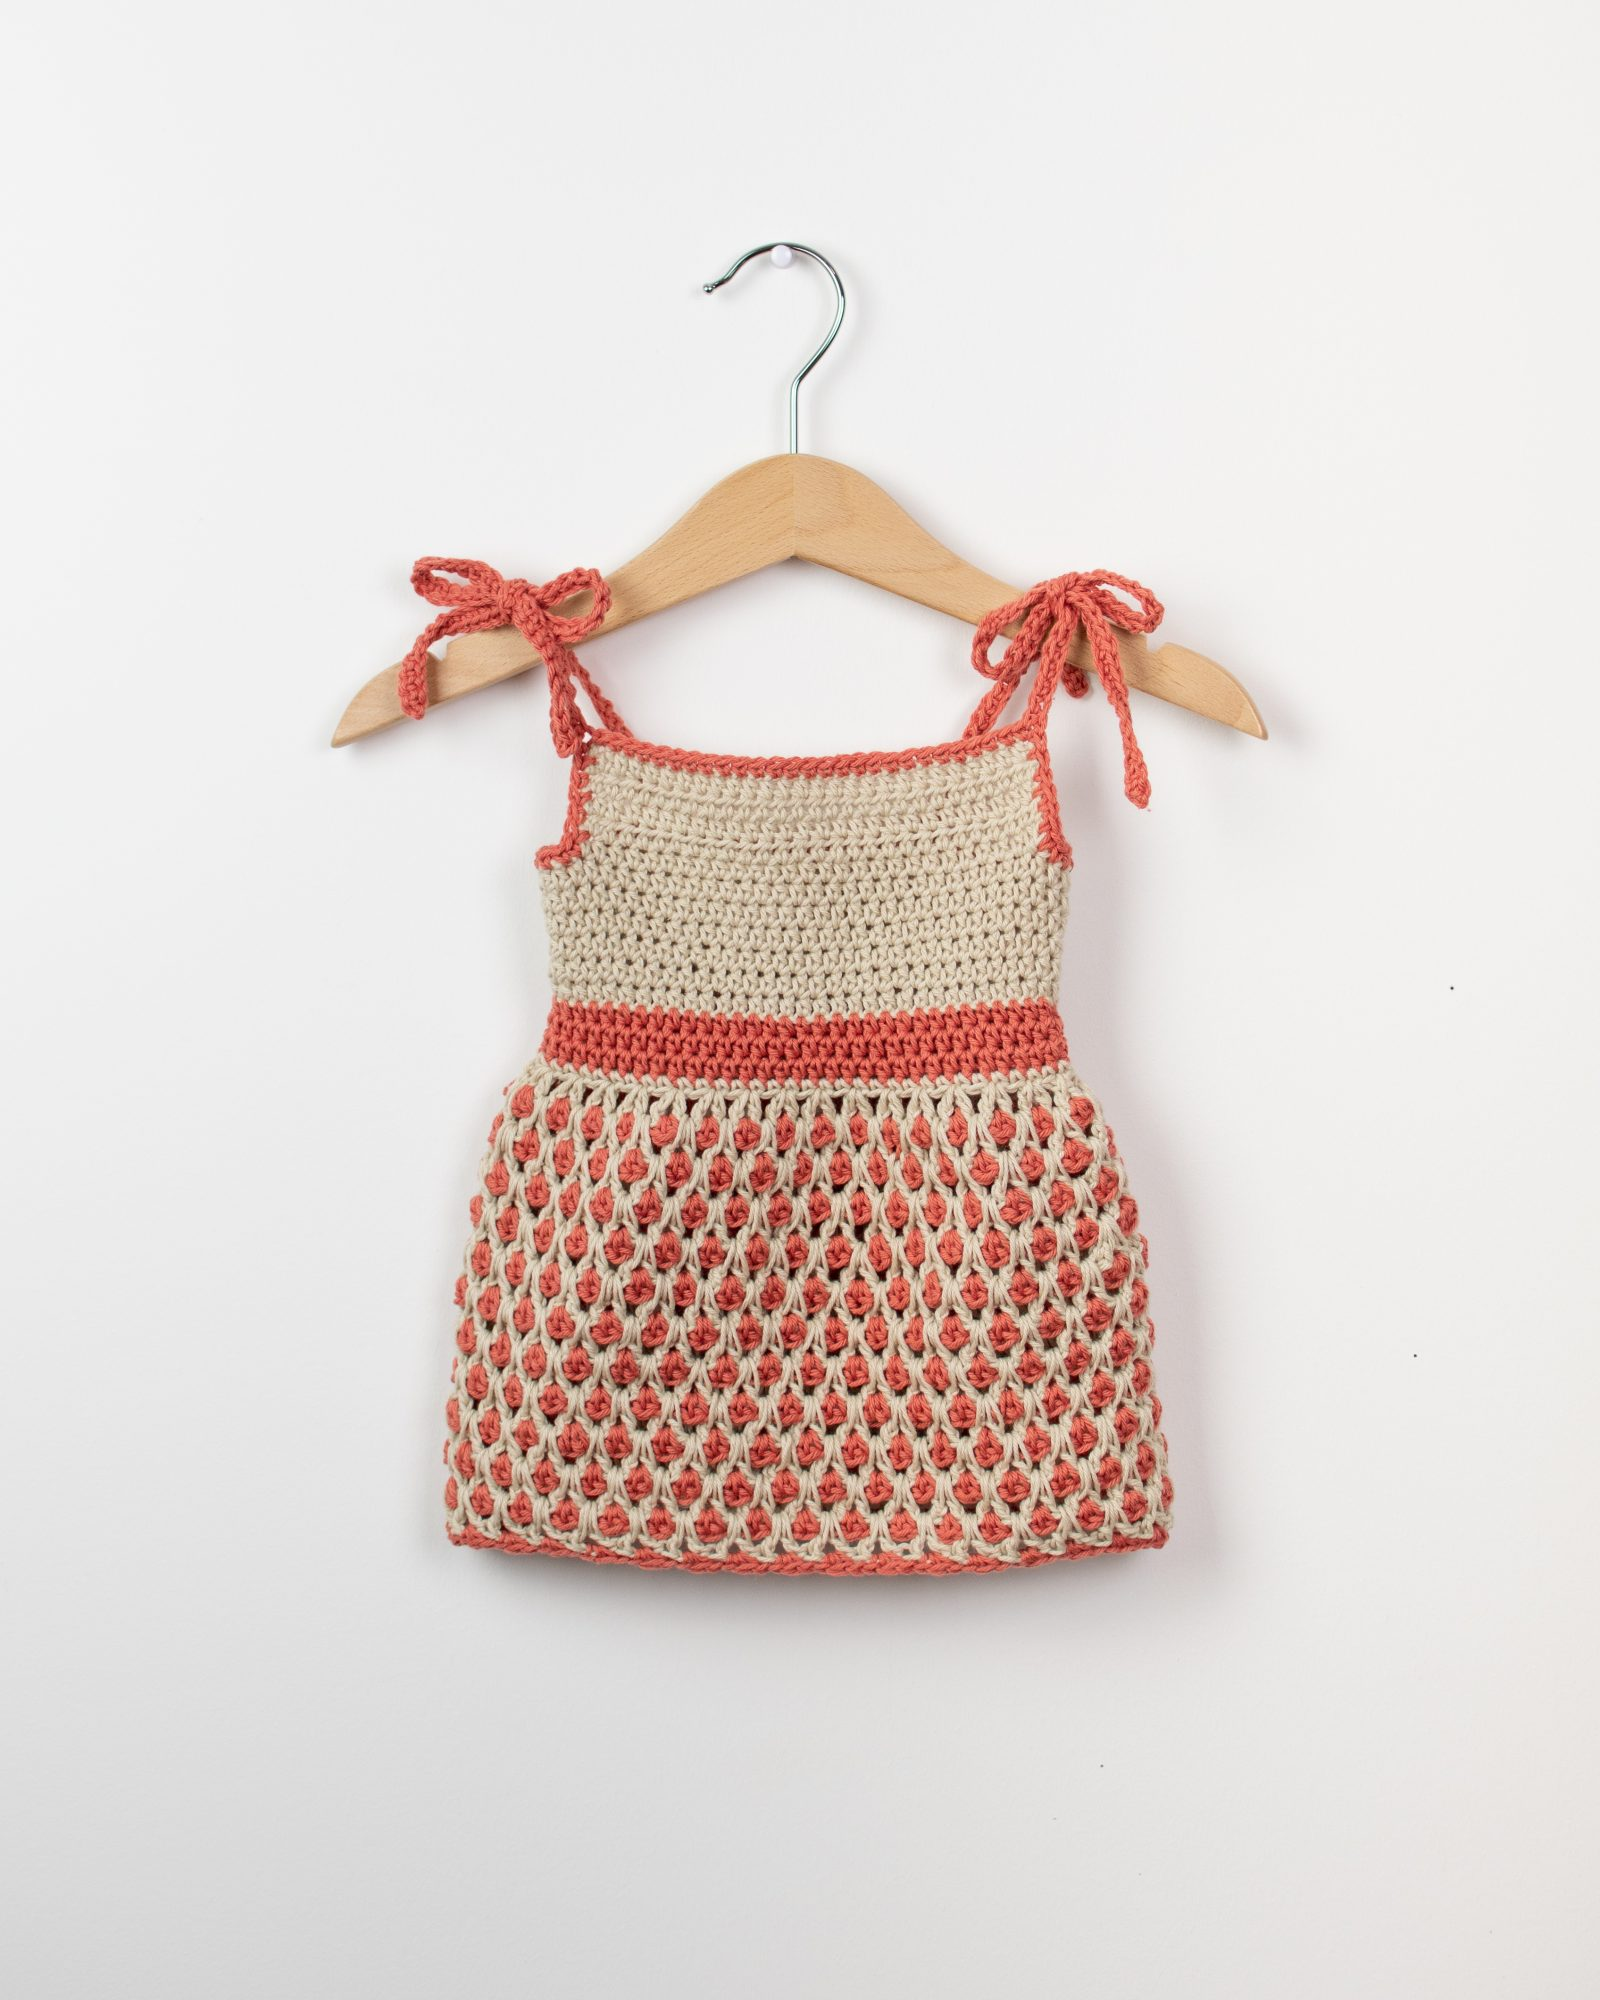 Crochet Pattern For A Baby Dress Little Ladybug Croby Patterns